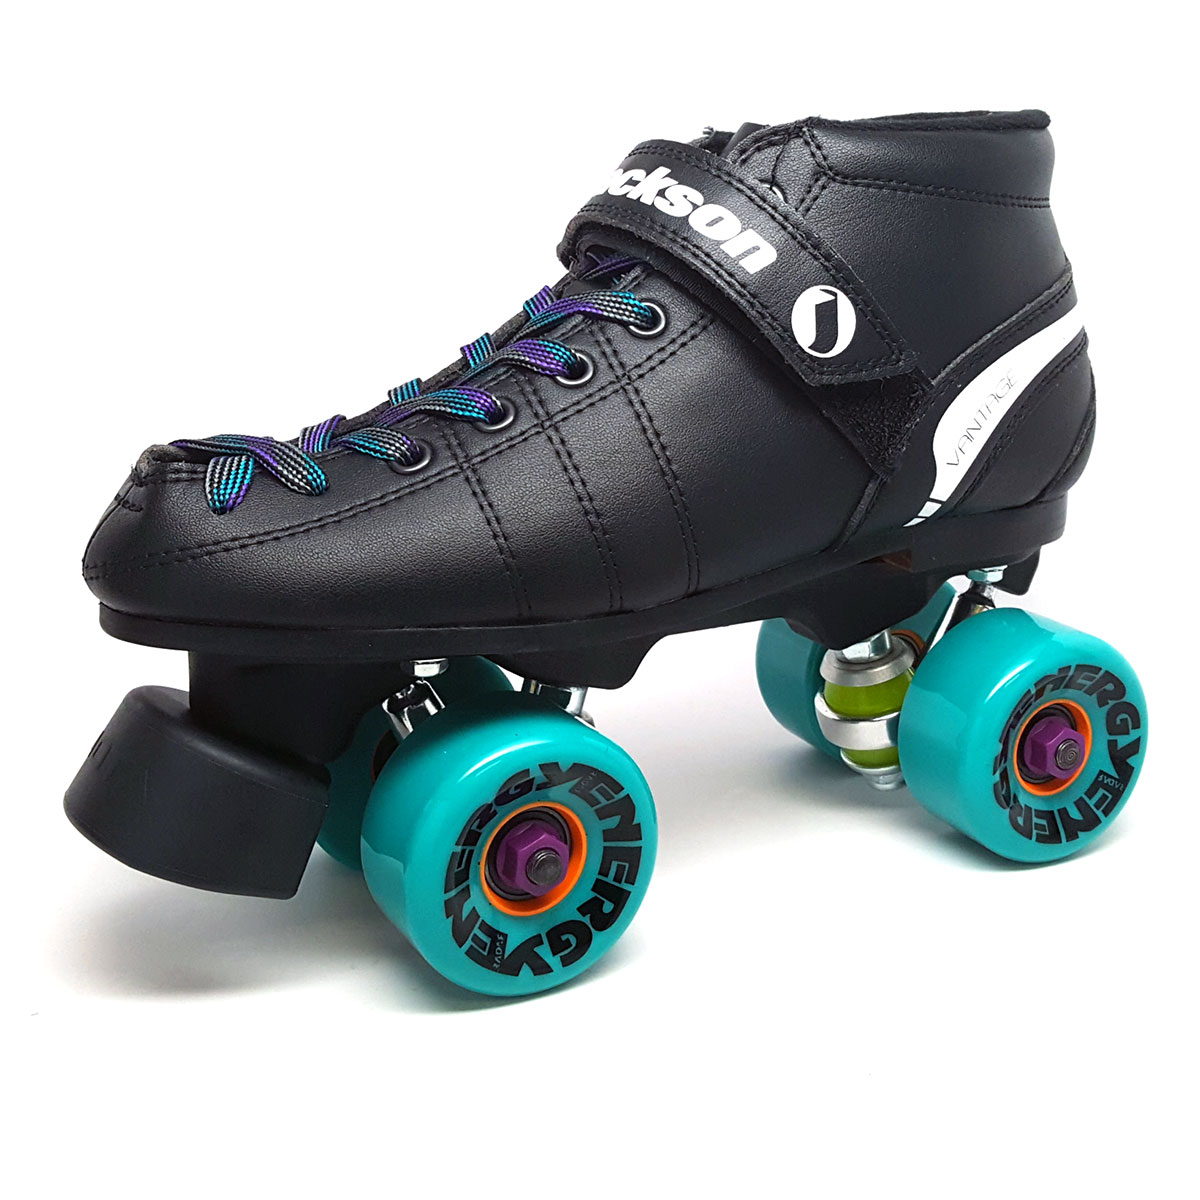 Outdoor Quad Skates